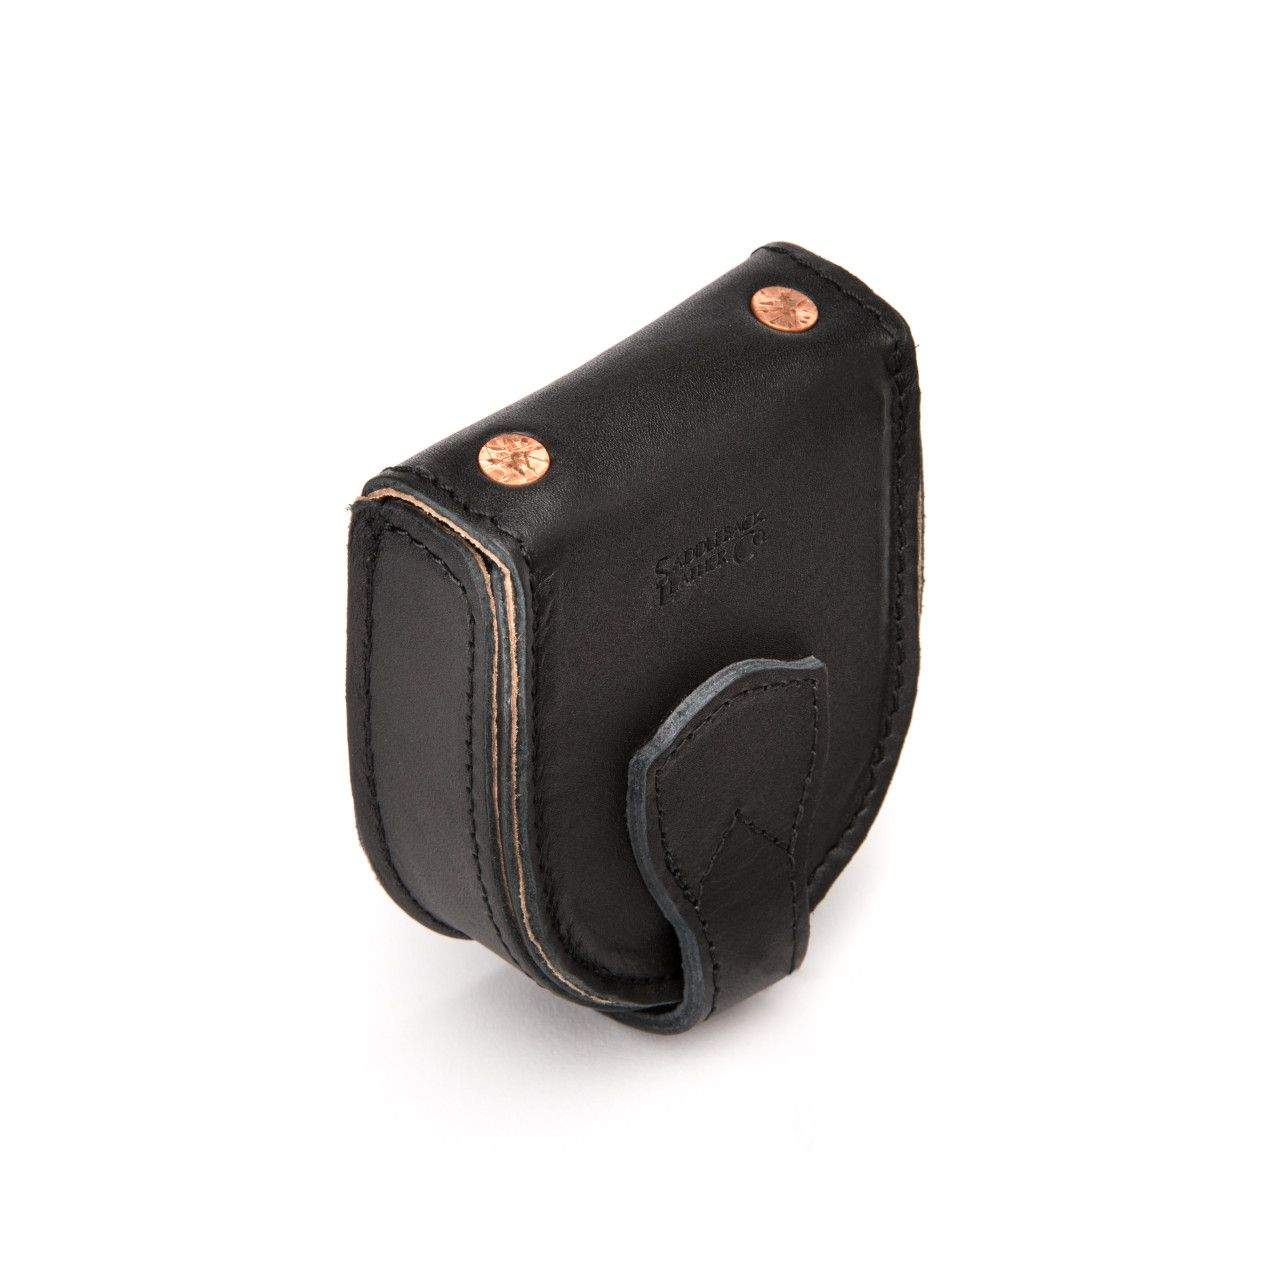 leather coin purse in black leather